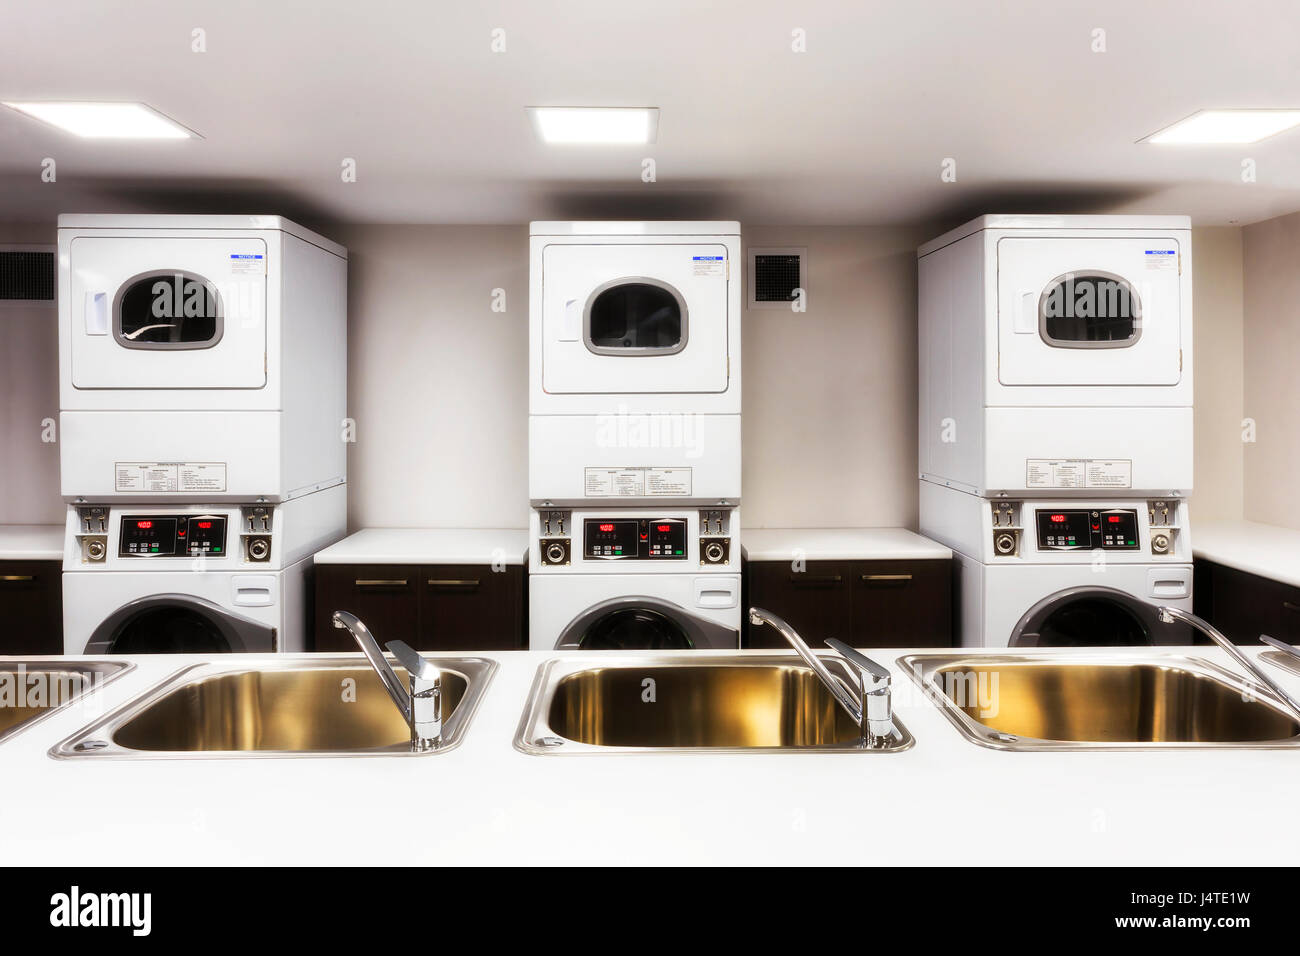 Big laundromat with washing and drying machines behind sinks with taps ready for customers with laundry. - Stock Image